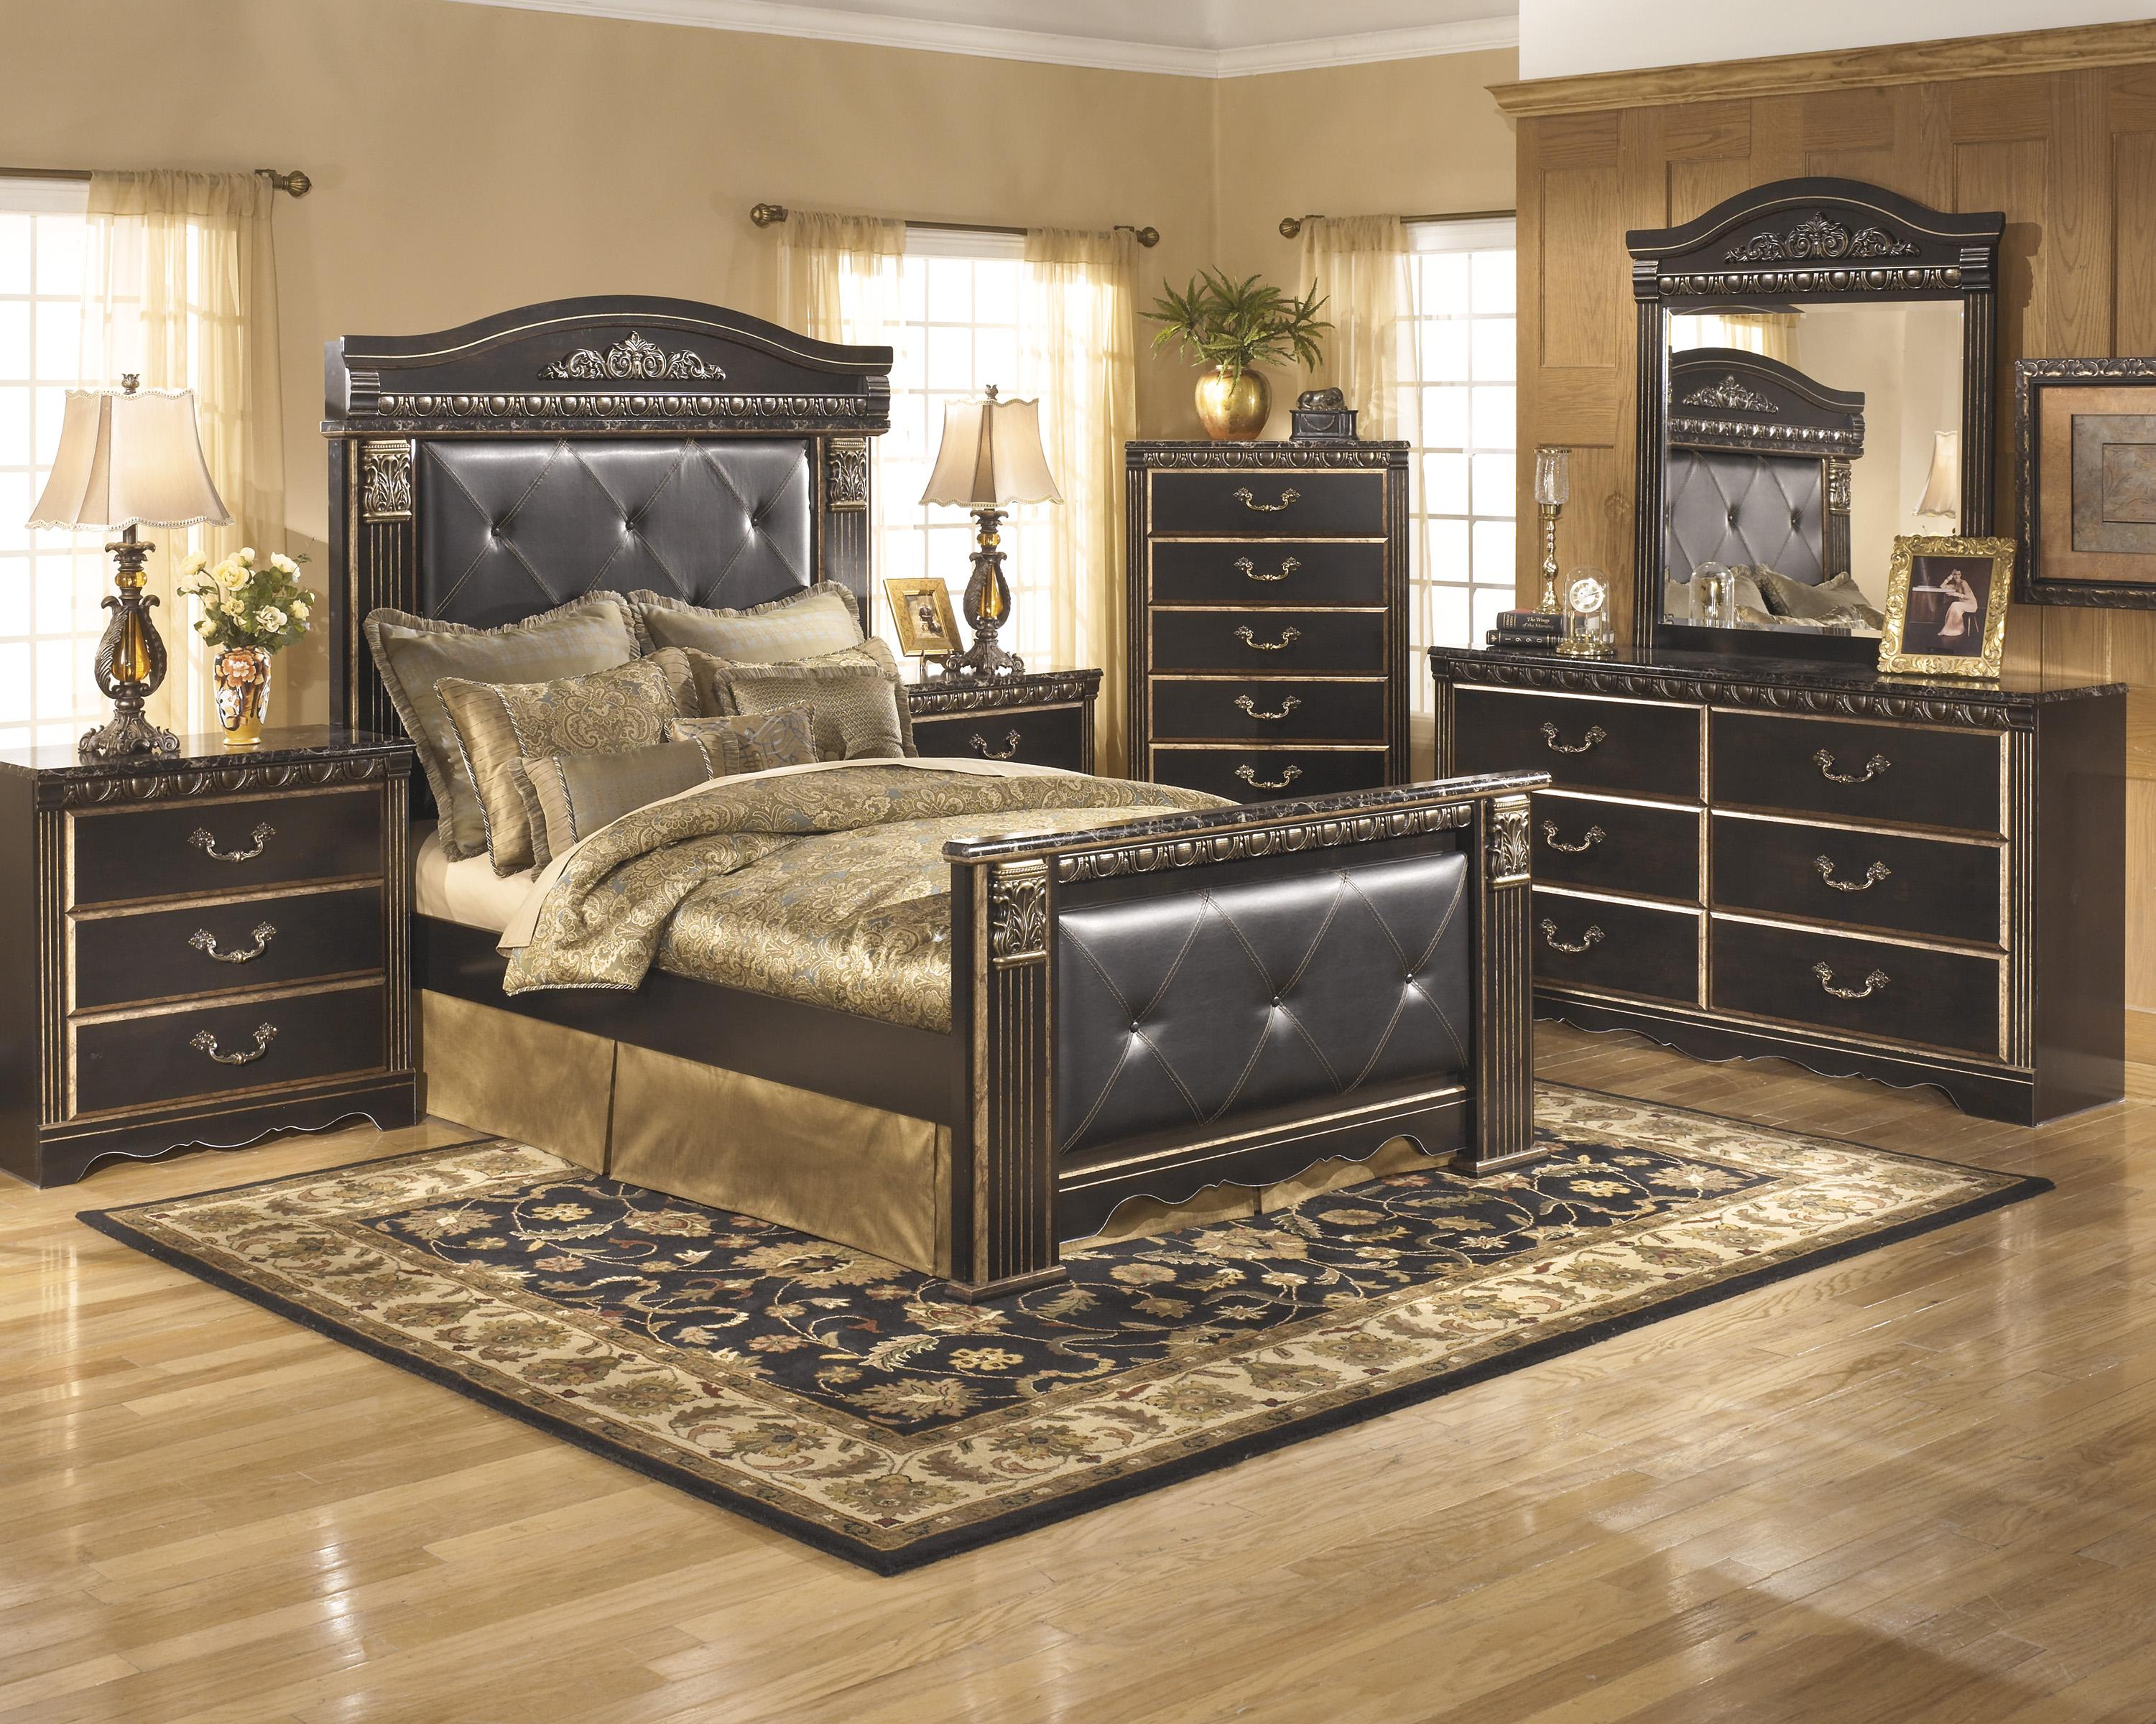 Signature Design by Ashley Coal Creek Queen Bedroom Group - Item Number: B175 Q Bedroom Group 1